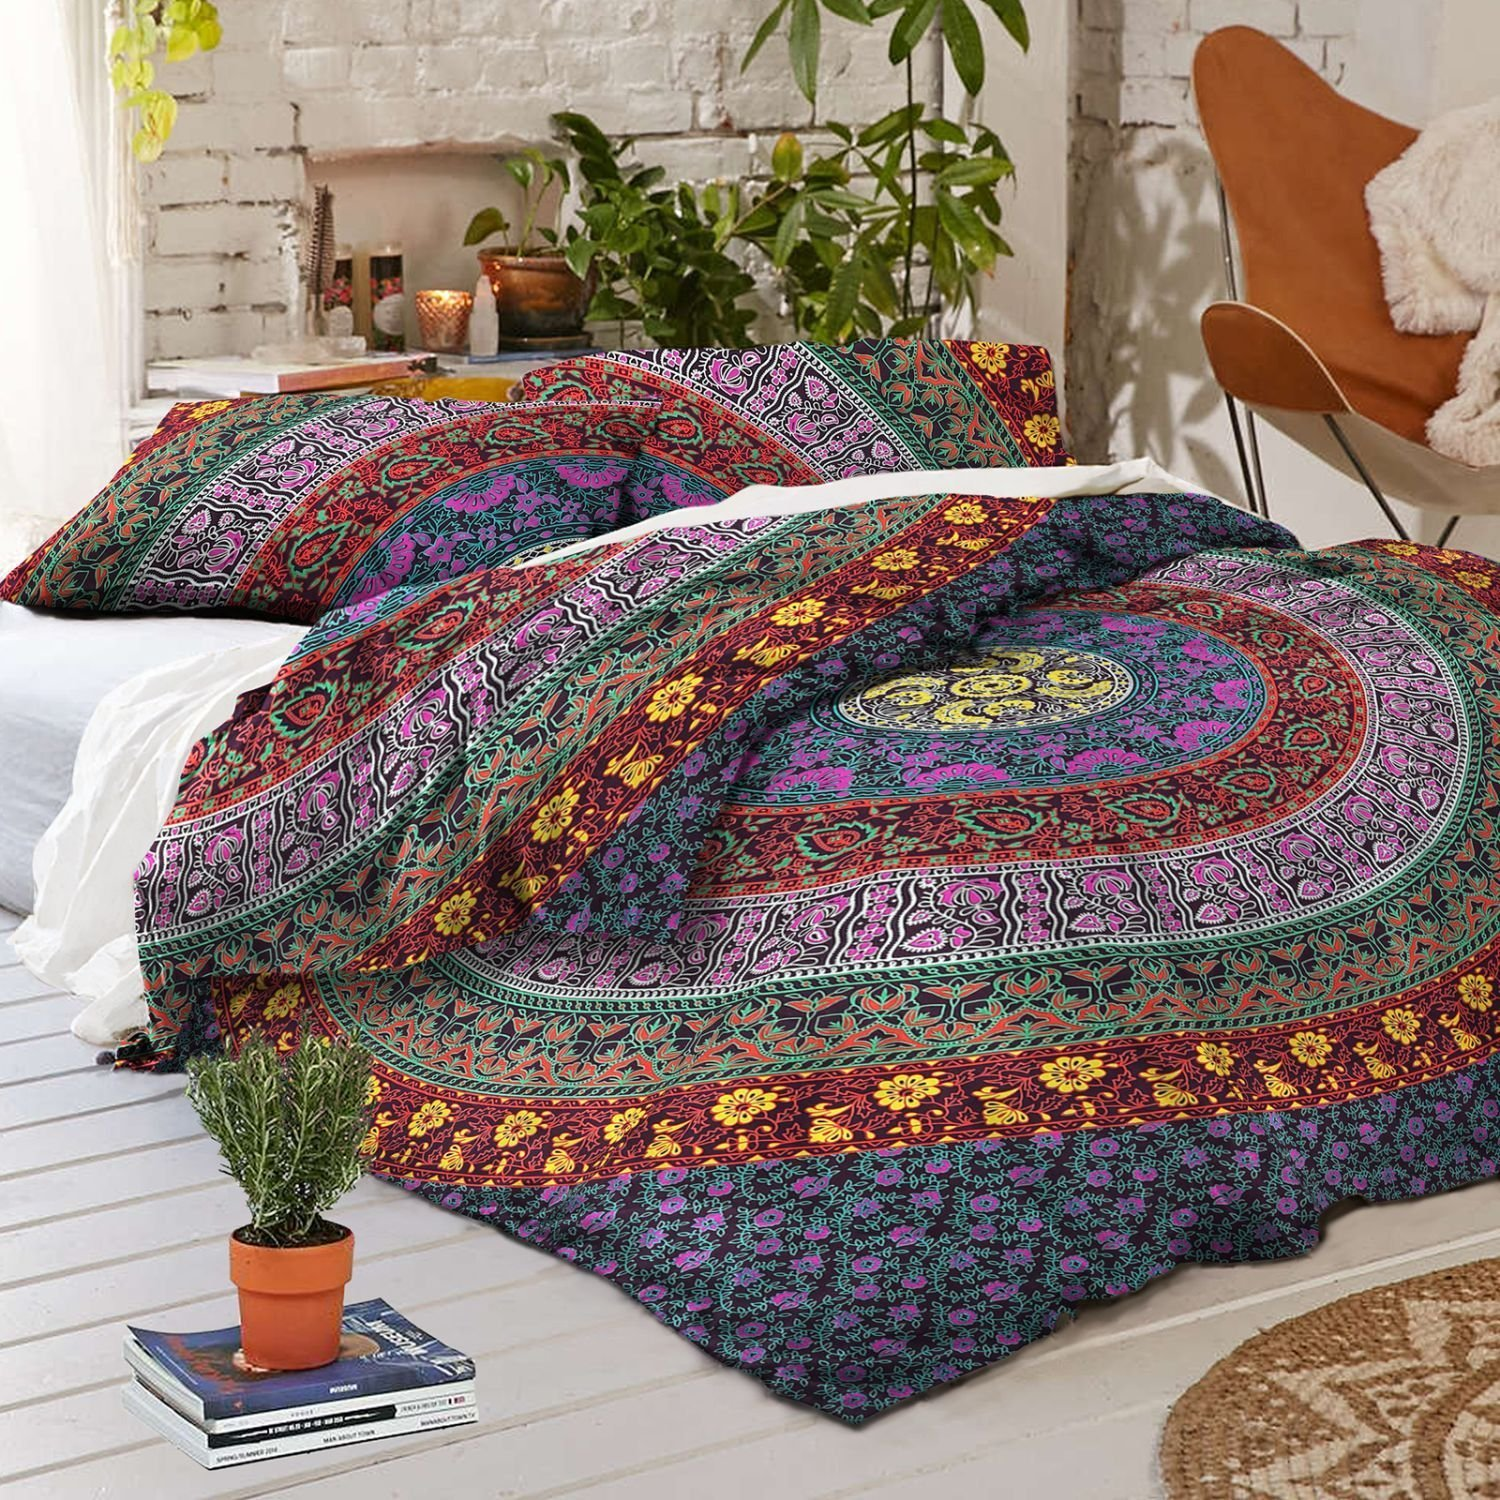 4 PC Set Doona Bedding Boho Indian Duvet Cover Reversible Cover with 1 pc Tapestry Queen Size Bedsheet Elephant Mandala Wall Hanging Beach Throw & Pillow Covers Hippie with free magazine holder